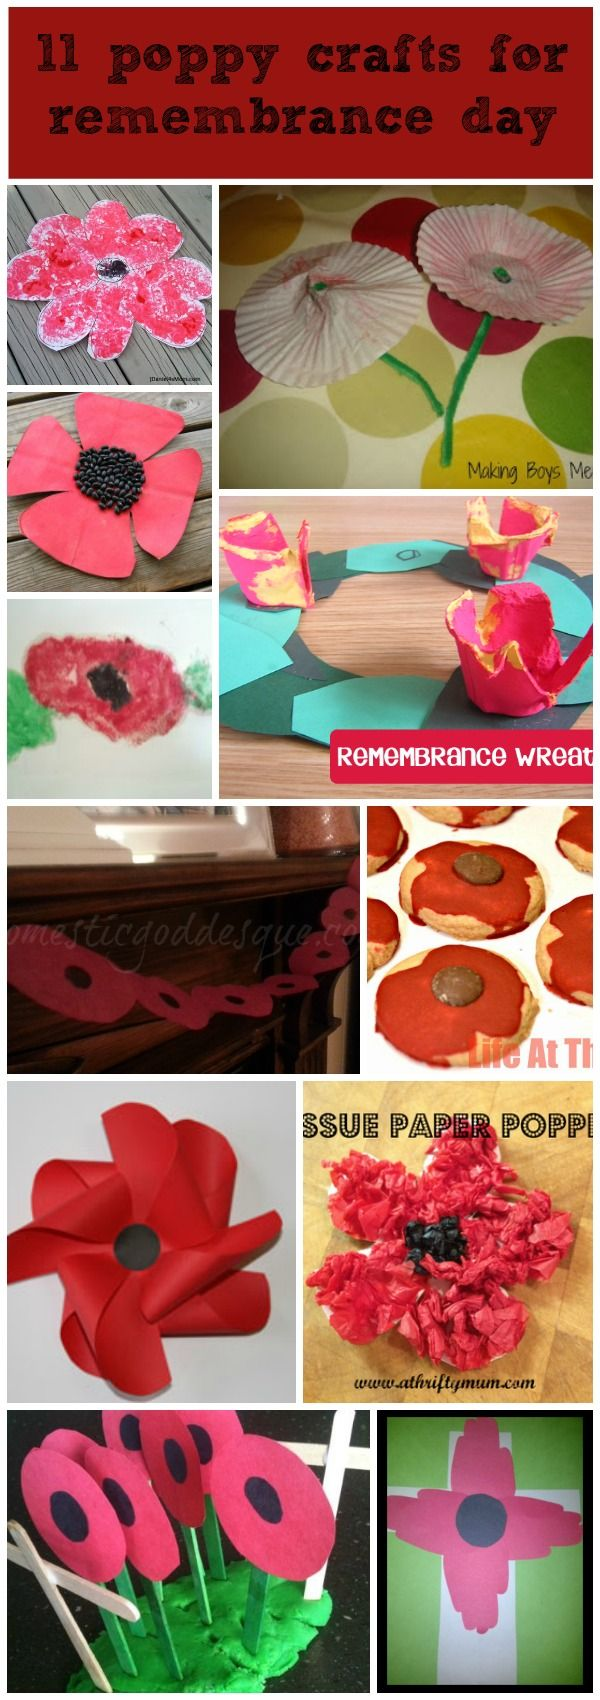 11 poppy crafts, art or food for remembrance day - Mum In The Madhouse- Mum In The Madhouse